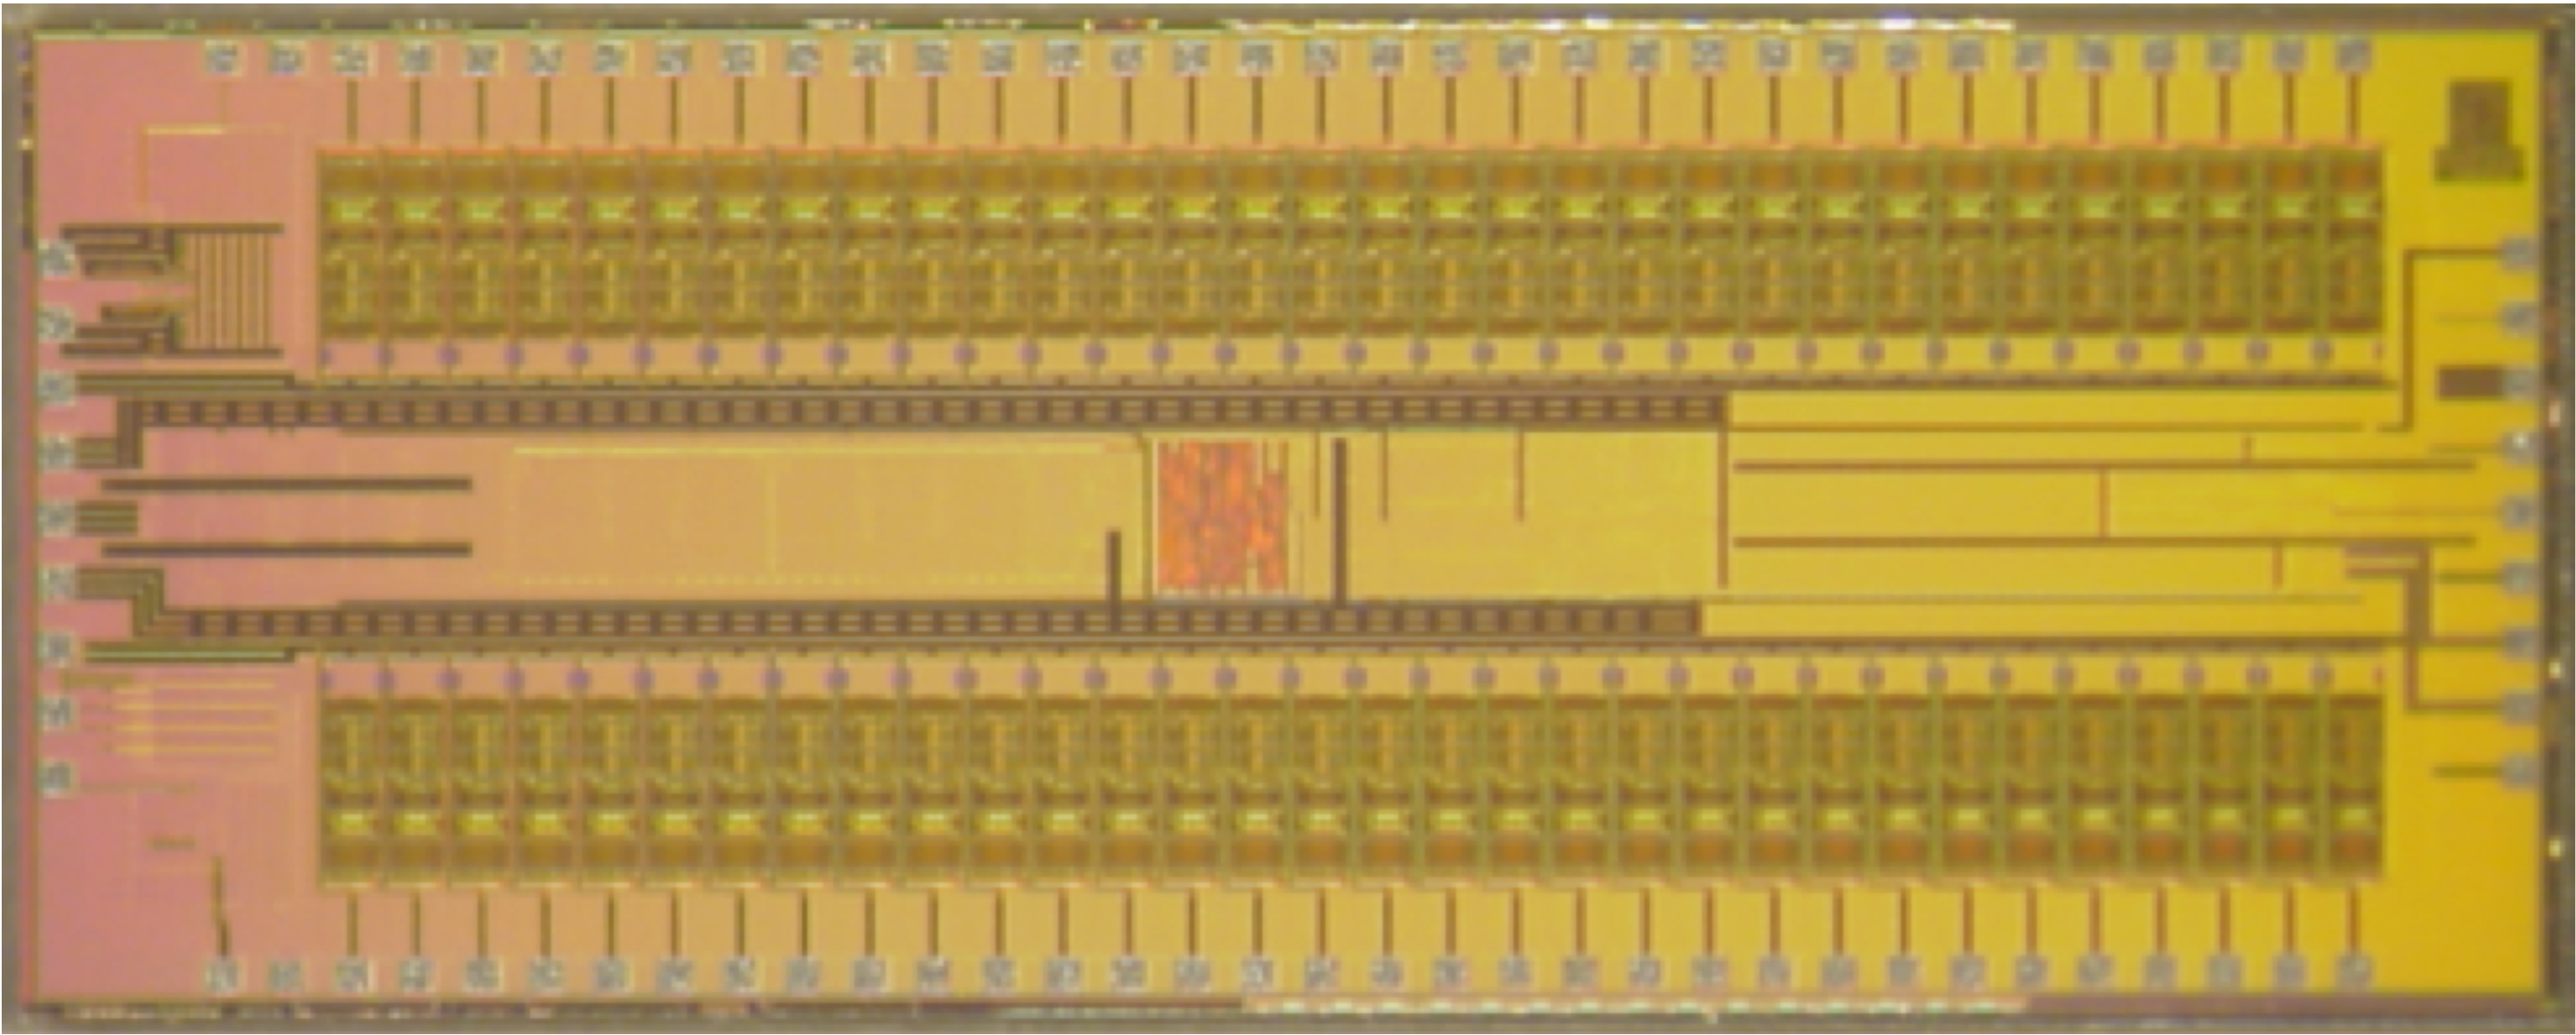 A close up picture of an integrated circuit